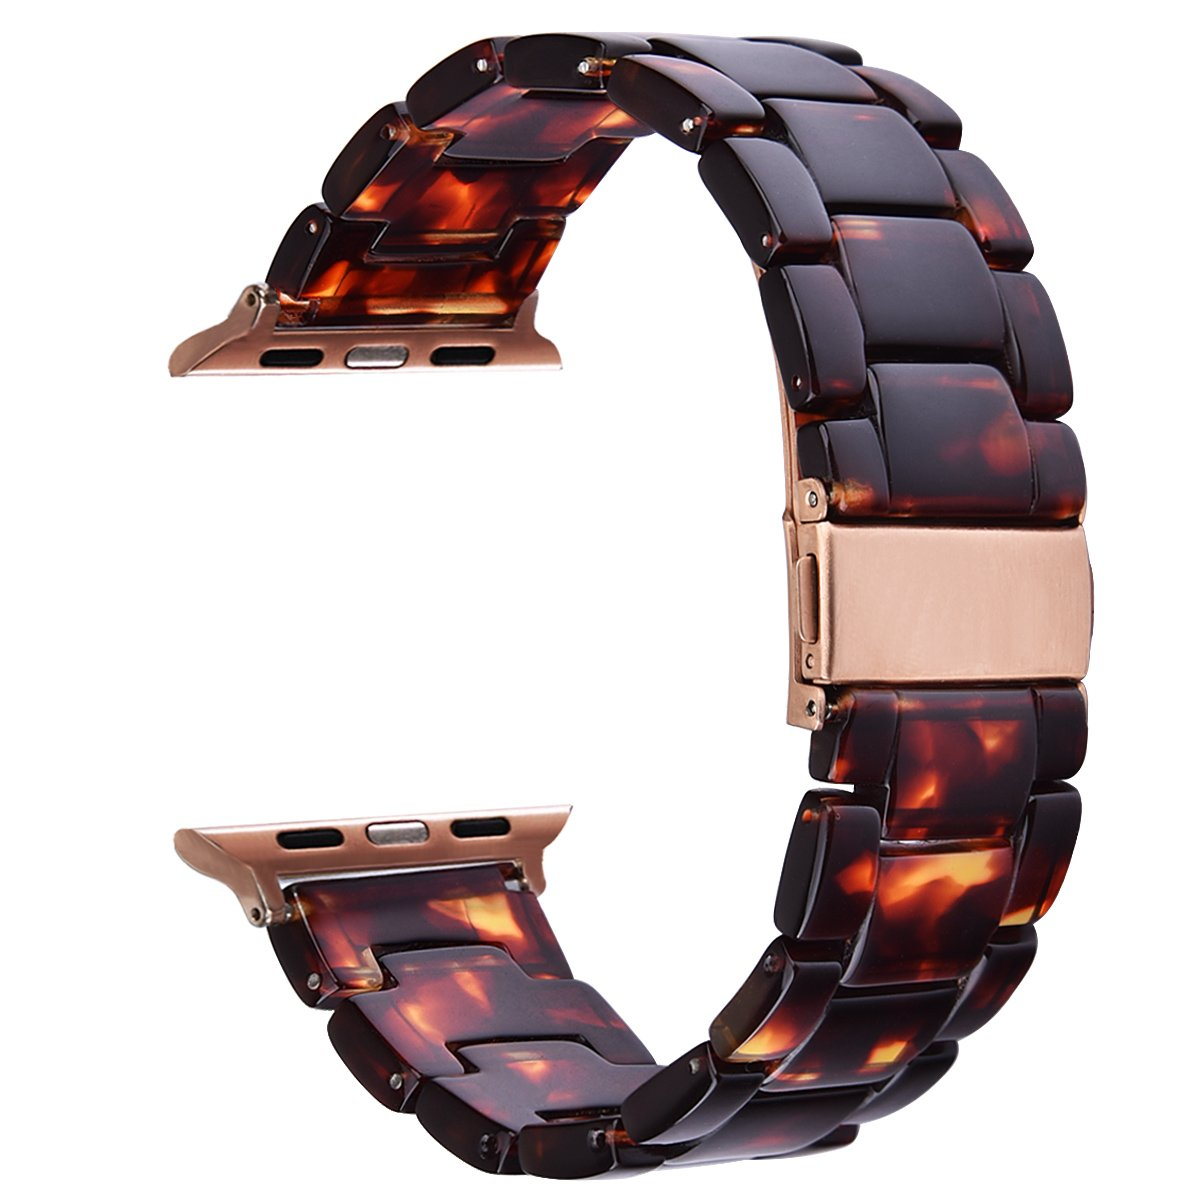 V_moro 38mm Apple Watch Band Women Men- Fashion Resin iWatch Band Bracelet With Copper Stainless Steel Buckle for Apple Watch Series 3 Series 2 Series 1 (Tortoise-tone, 38mm(5''-7.67''))